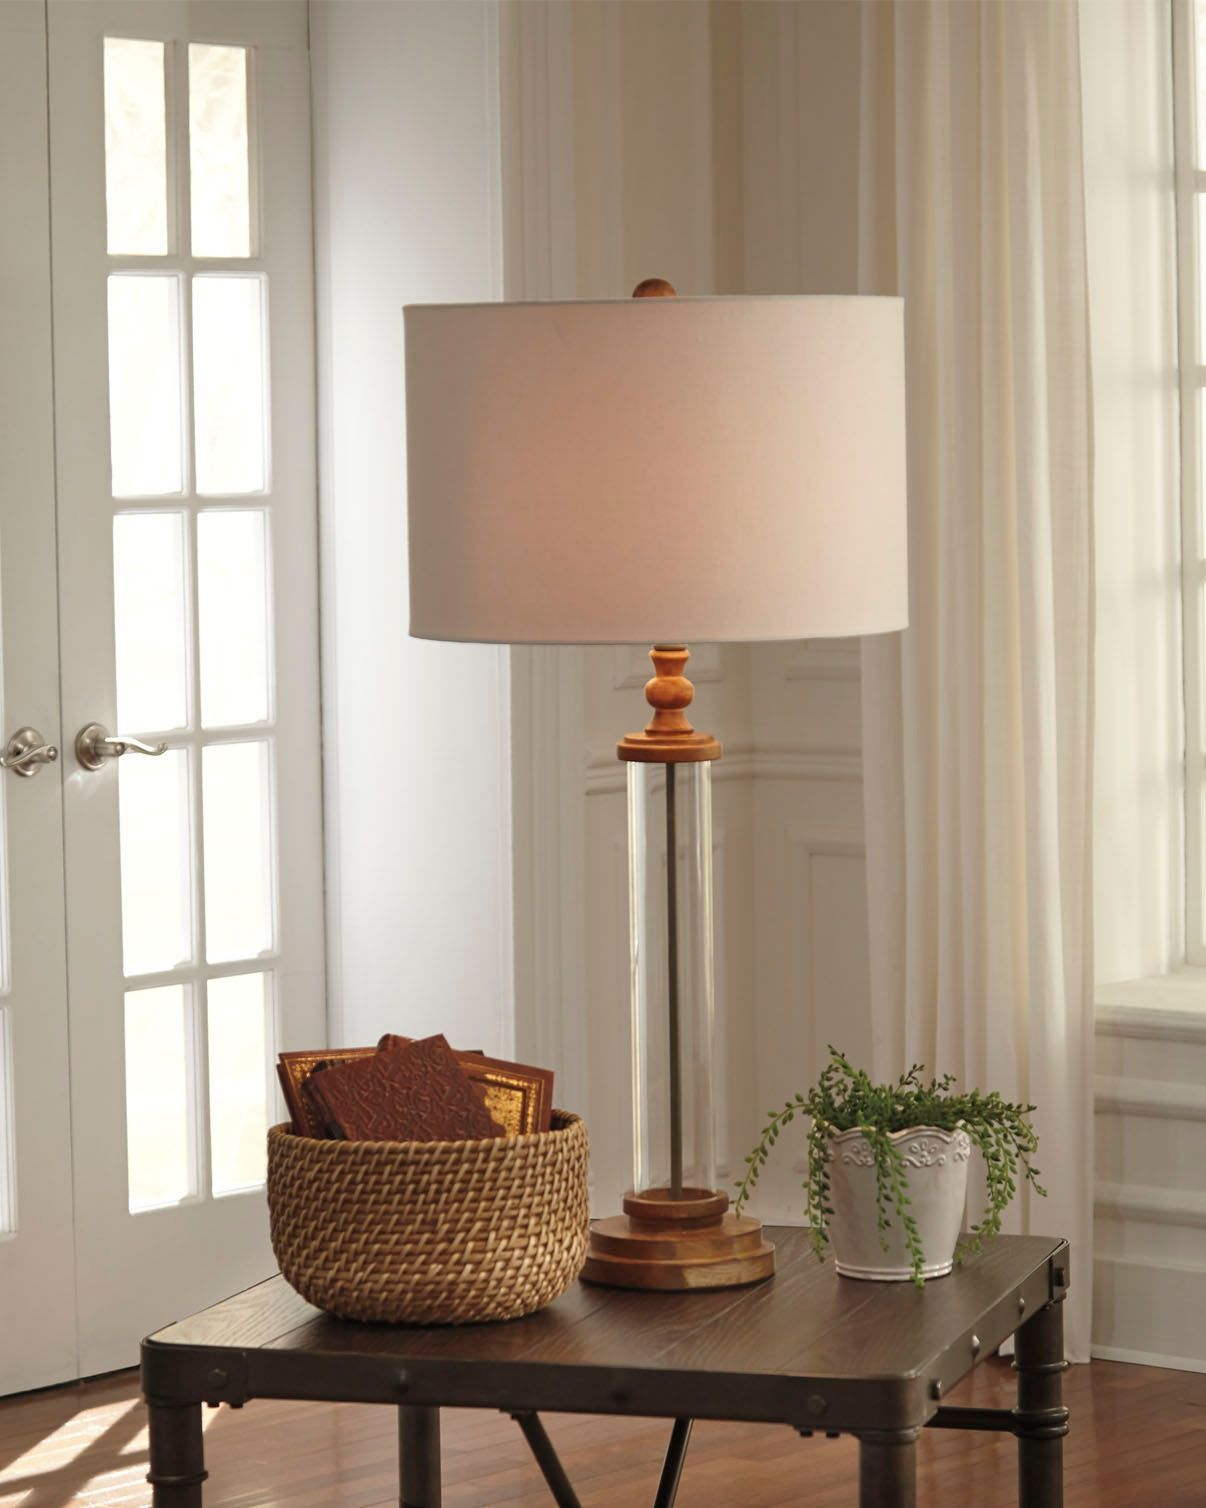 While looking for a lamp for your home, the choices are